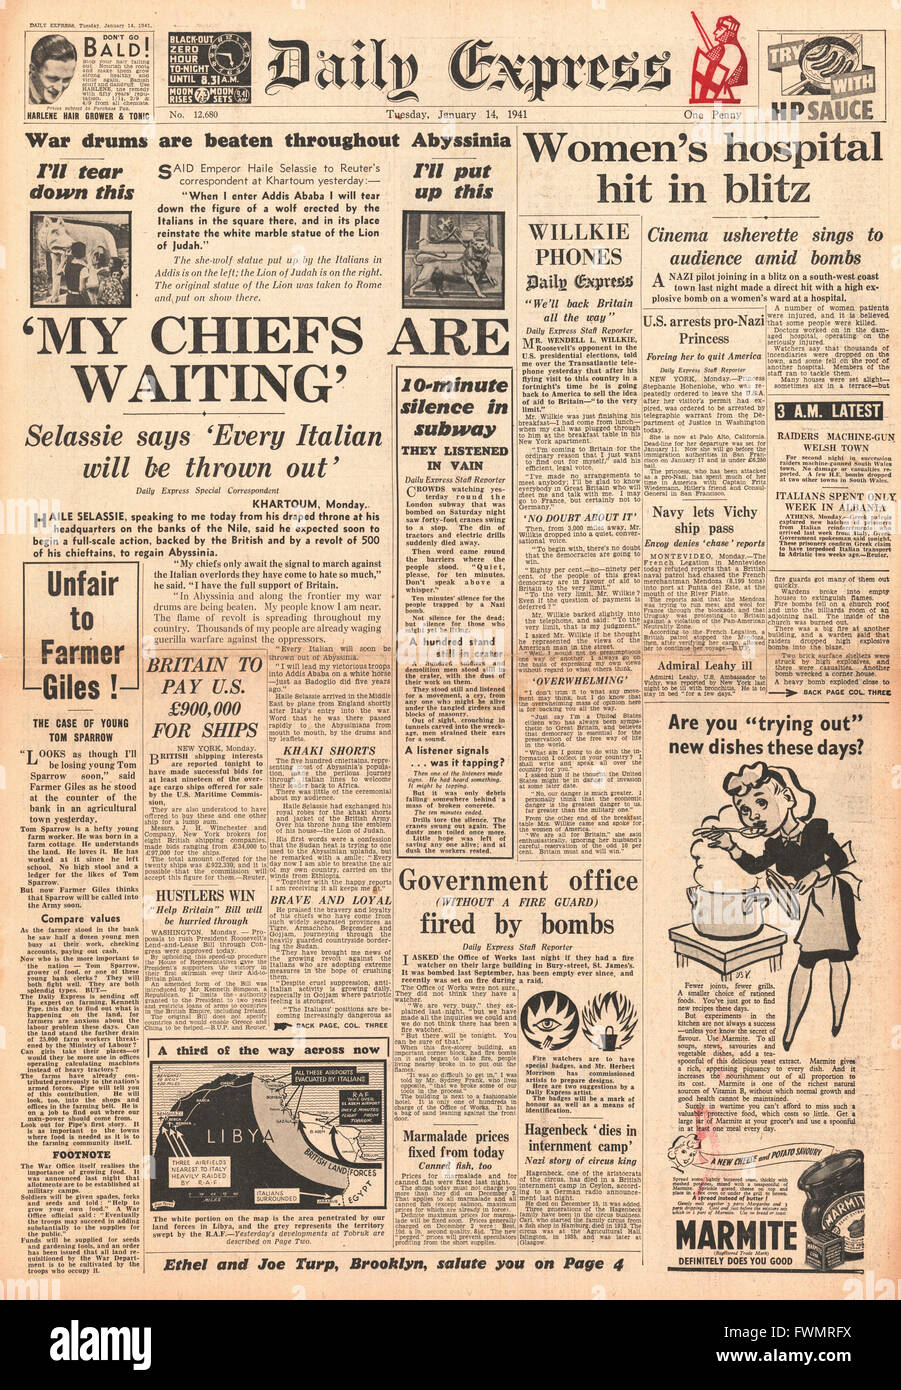 1941 front page Daily Express Emperor Haile Selassie puts troops on standby in Abyssina - Stock Image